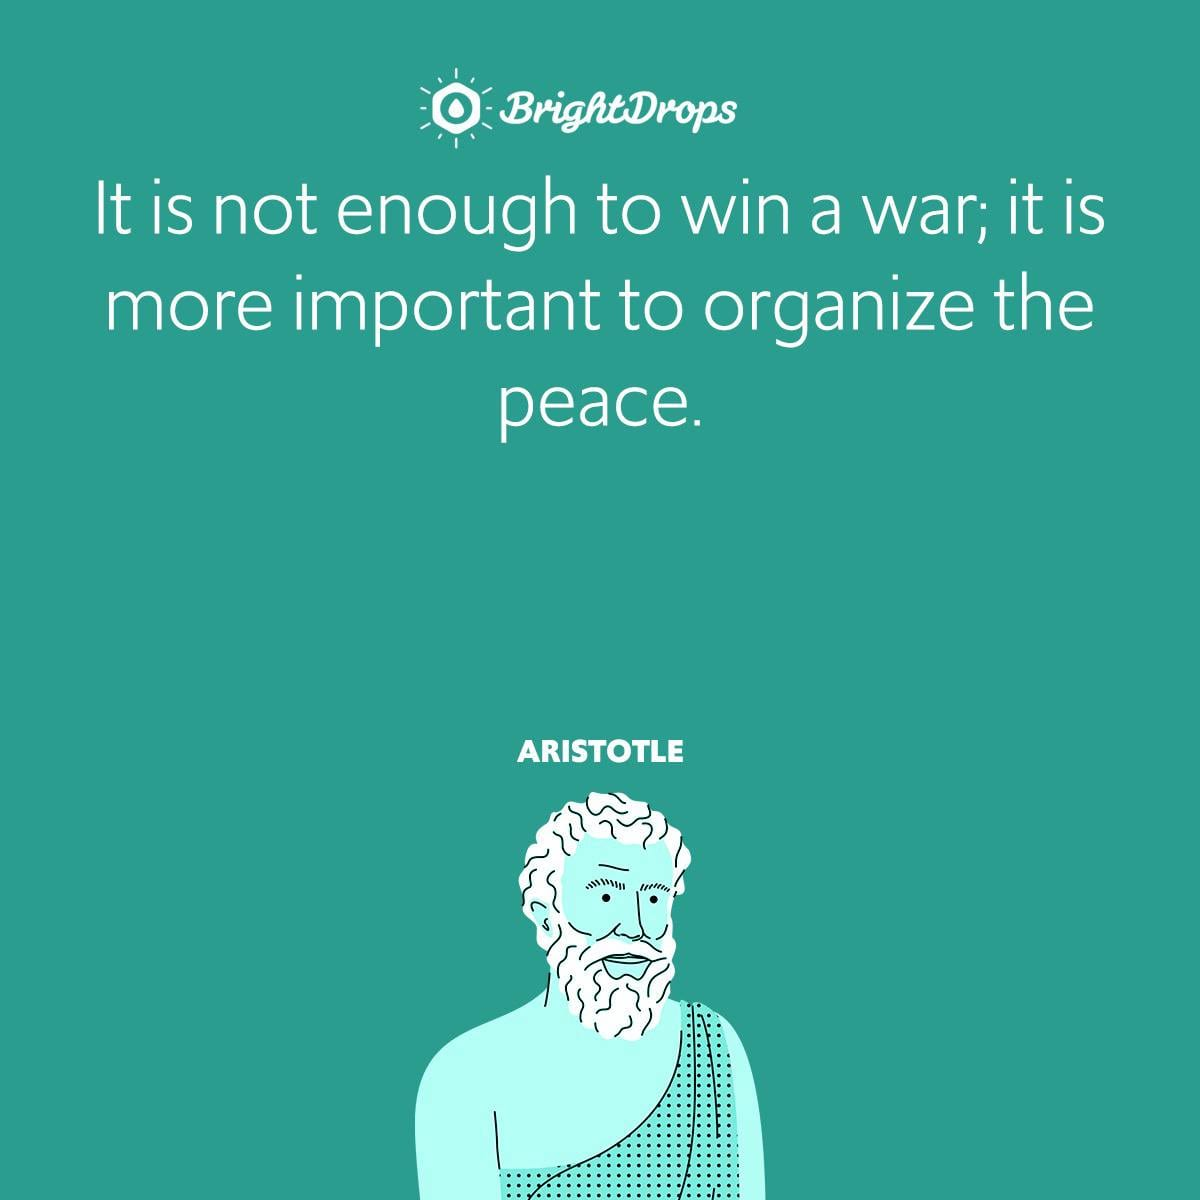 It is not enough to win a war; it is more important to organize the peace.